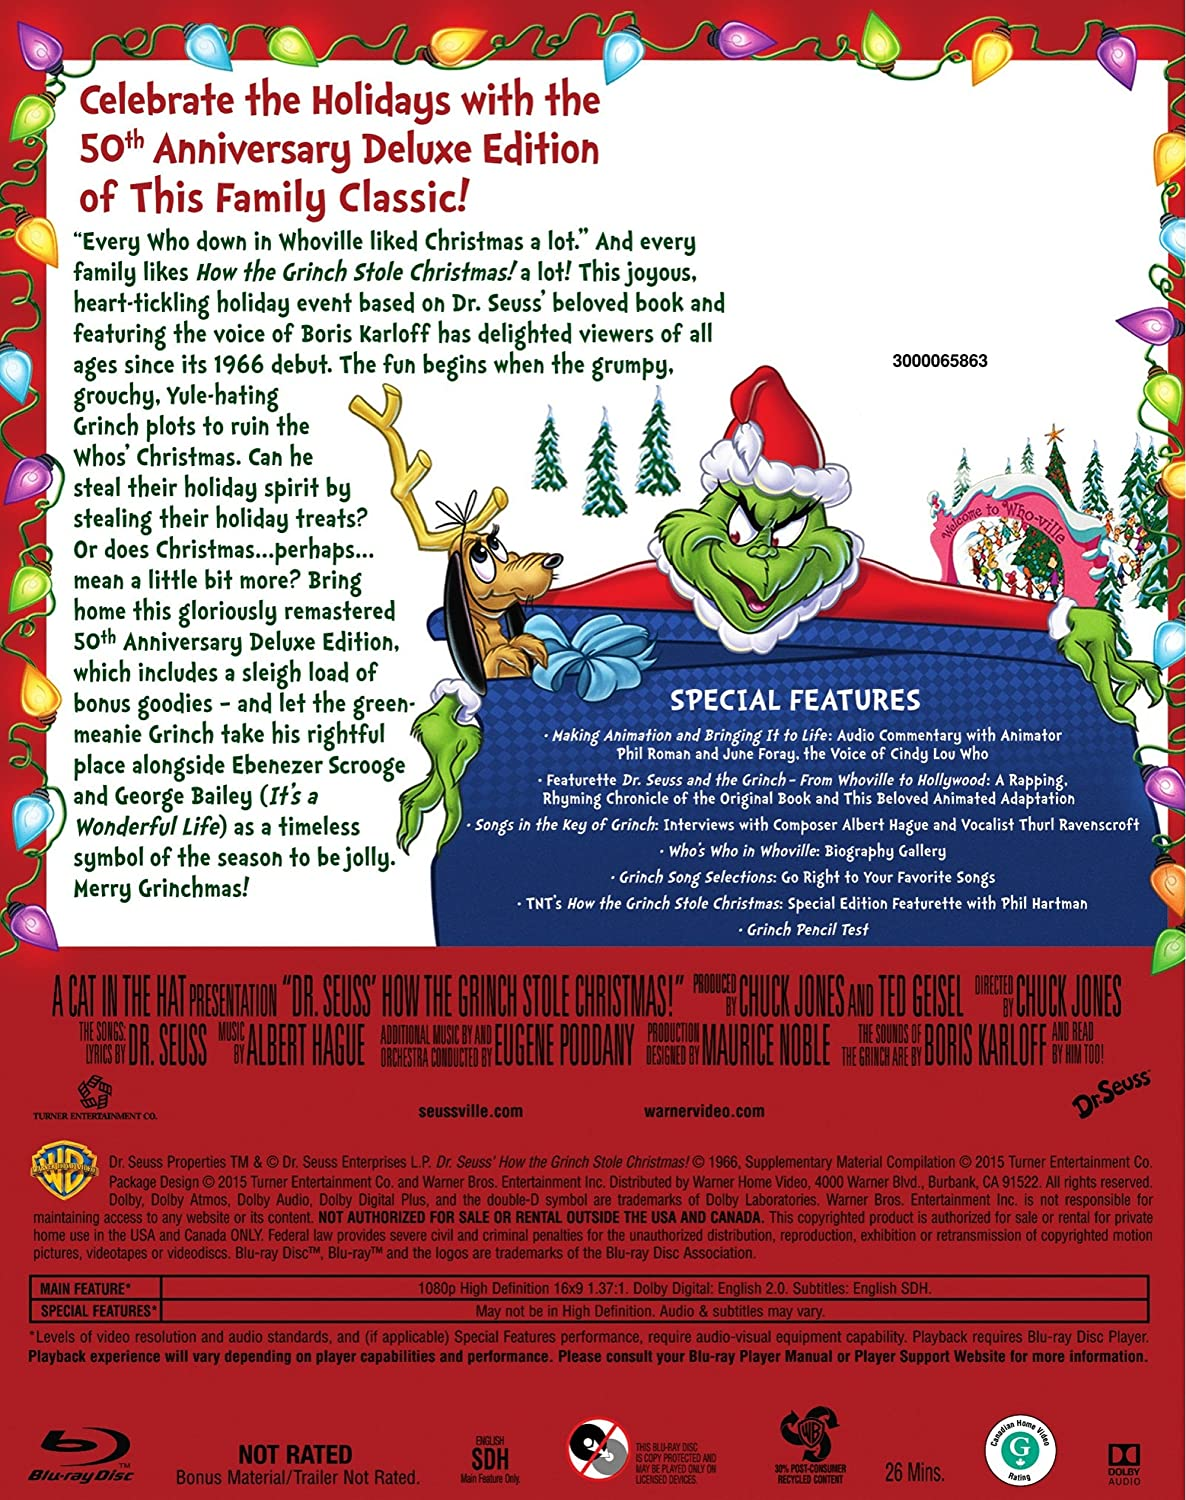 Amazon.com: How The Grinch Stole Christmas: 50th Anniversary ...